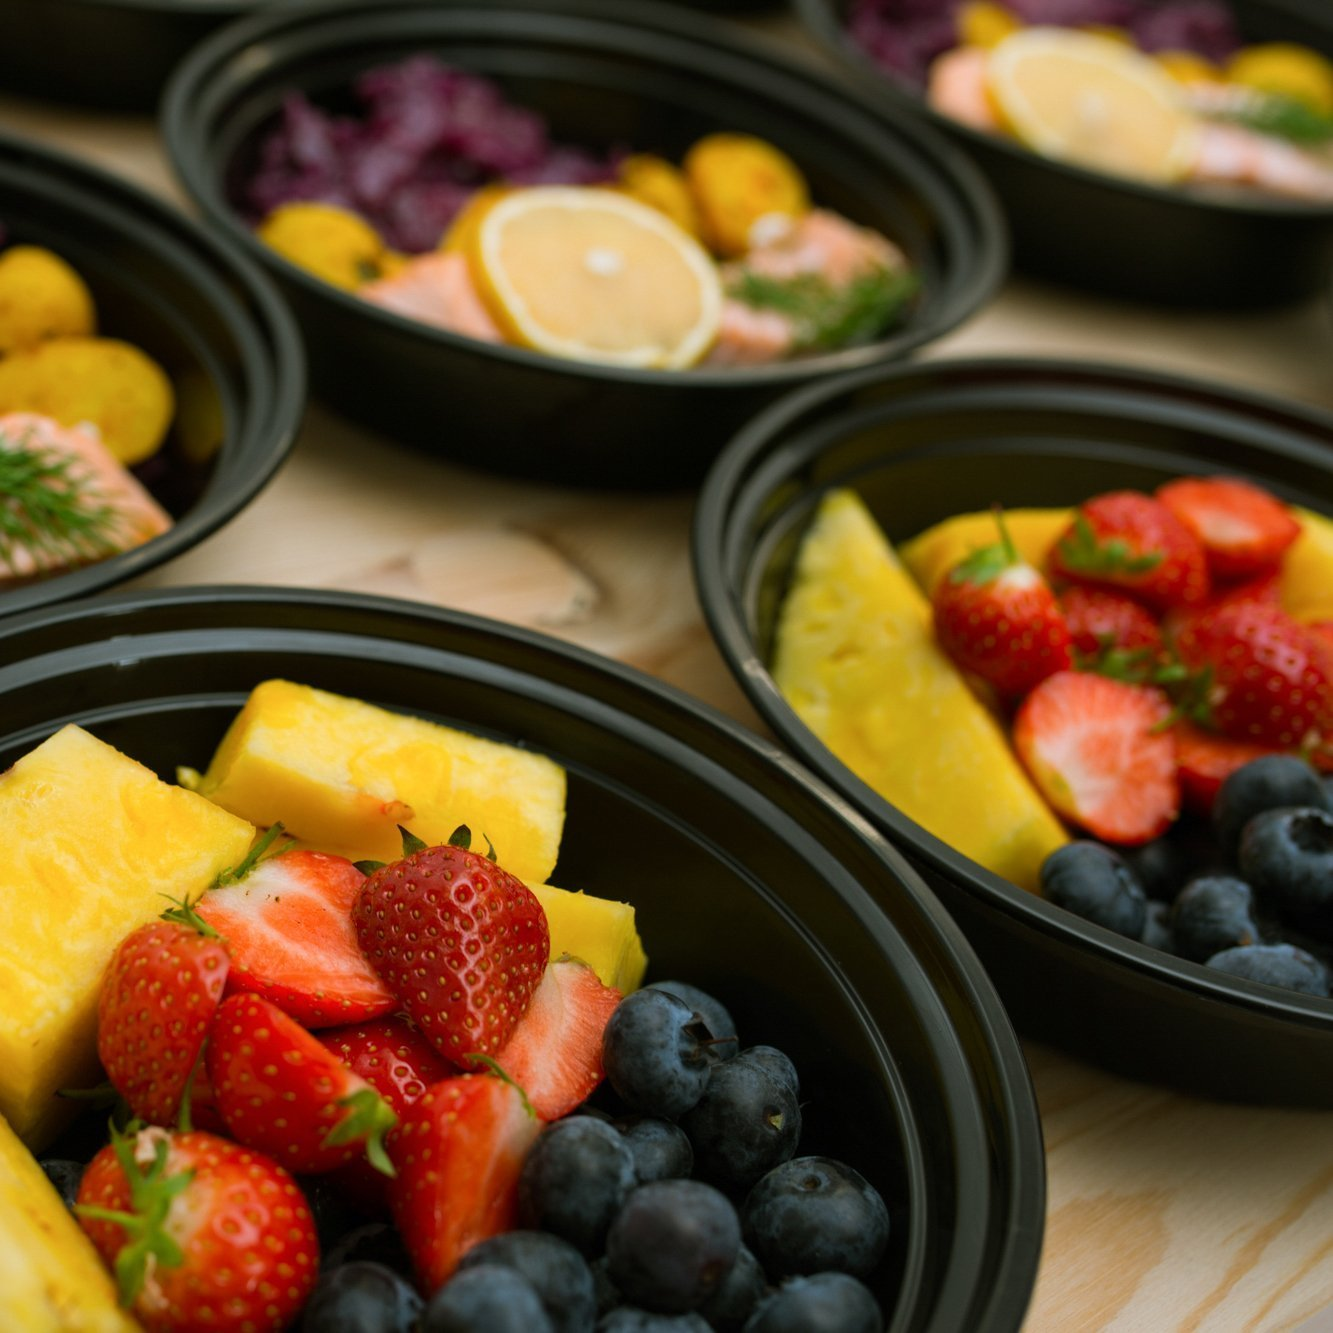 30 Meal Prep Containers Reusable - Disposable Food Containers Meal Prep Bowls - Plastic Containers with lids - Plastic Food Storage Containers with Lids - Lunch Containers for adults to go Containers by Prep Naturals (Image #2)